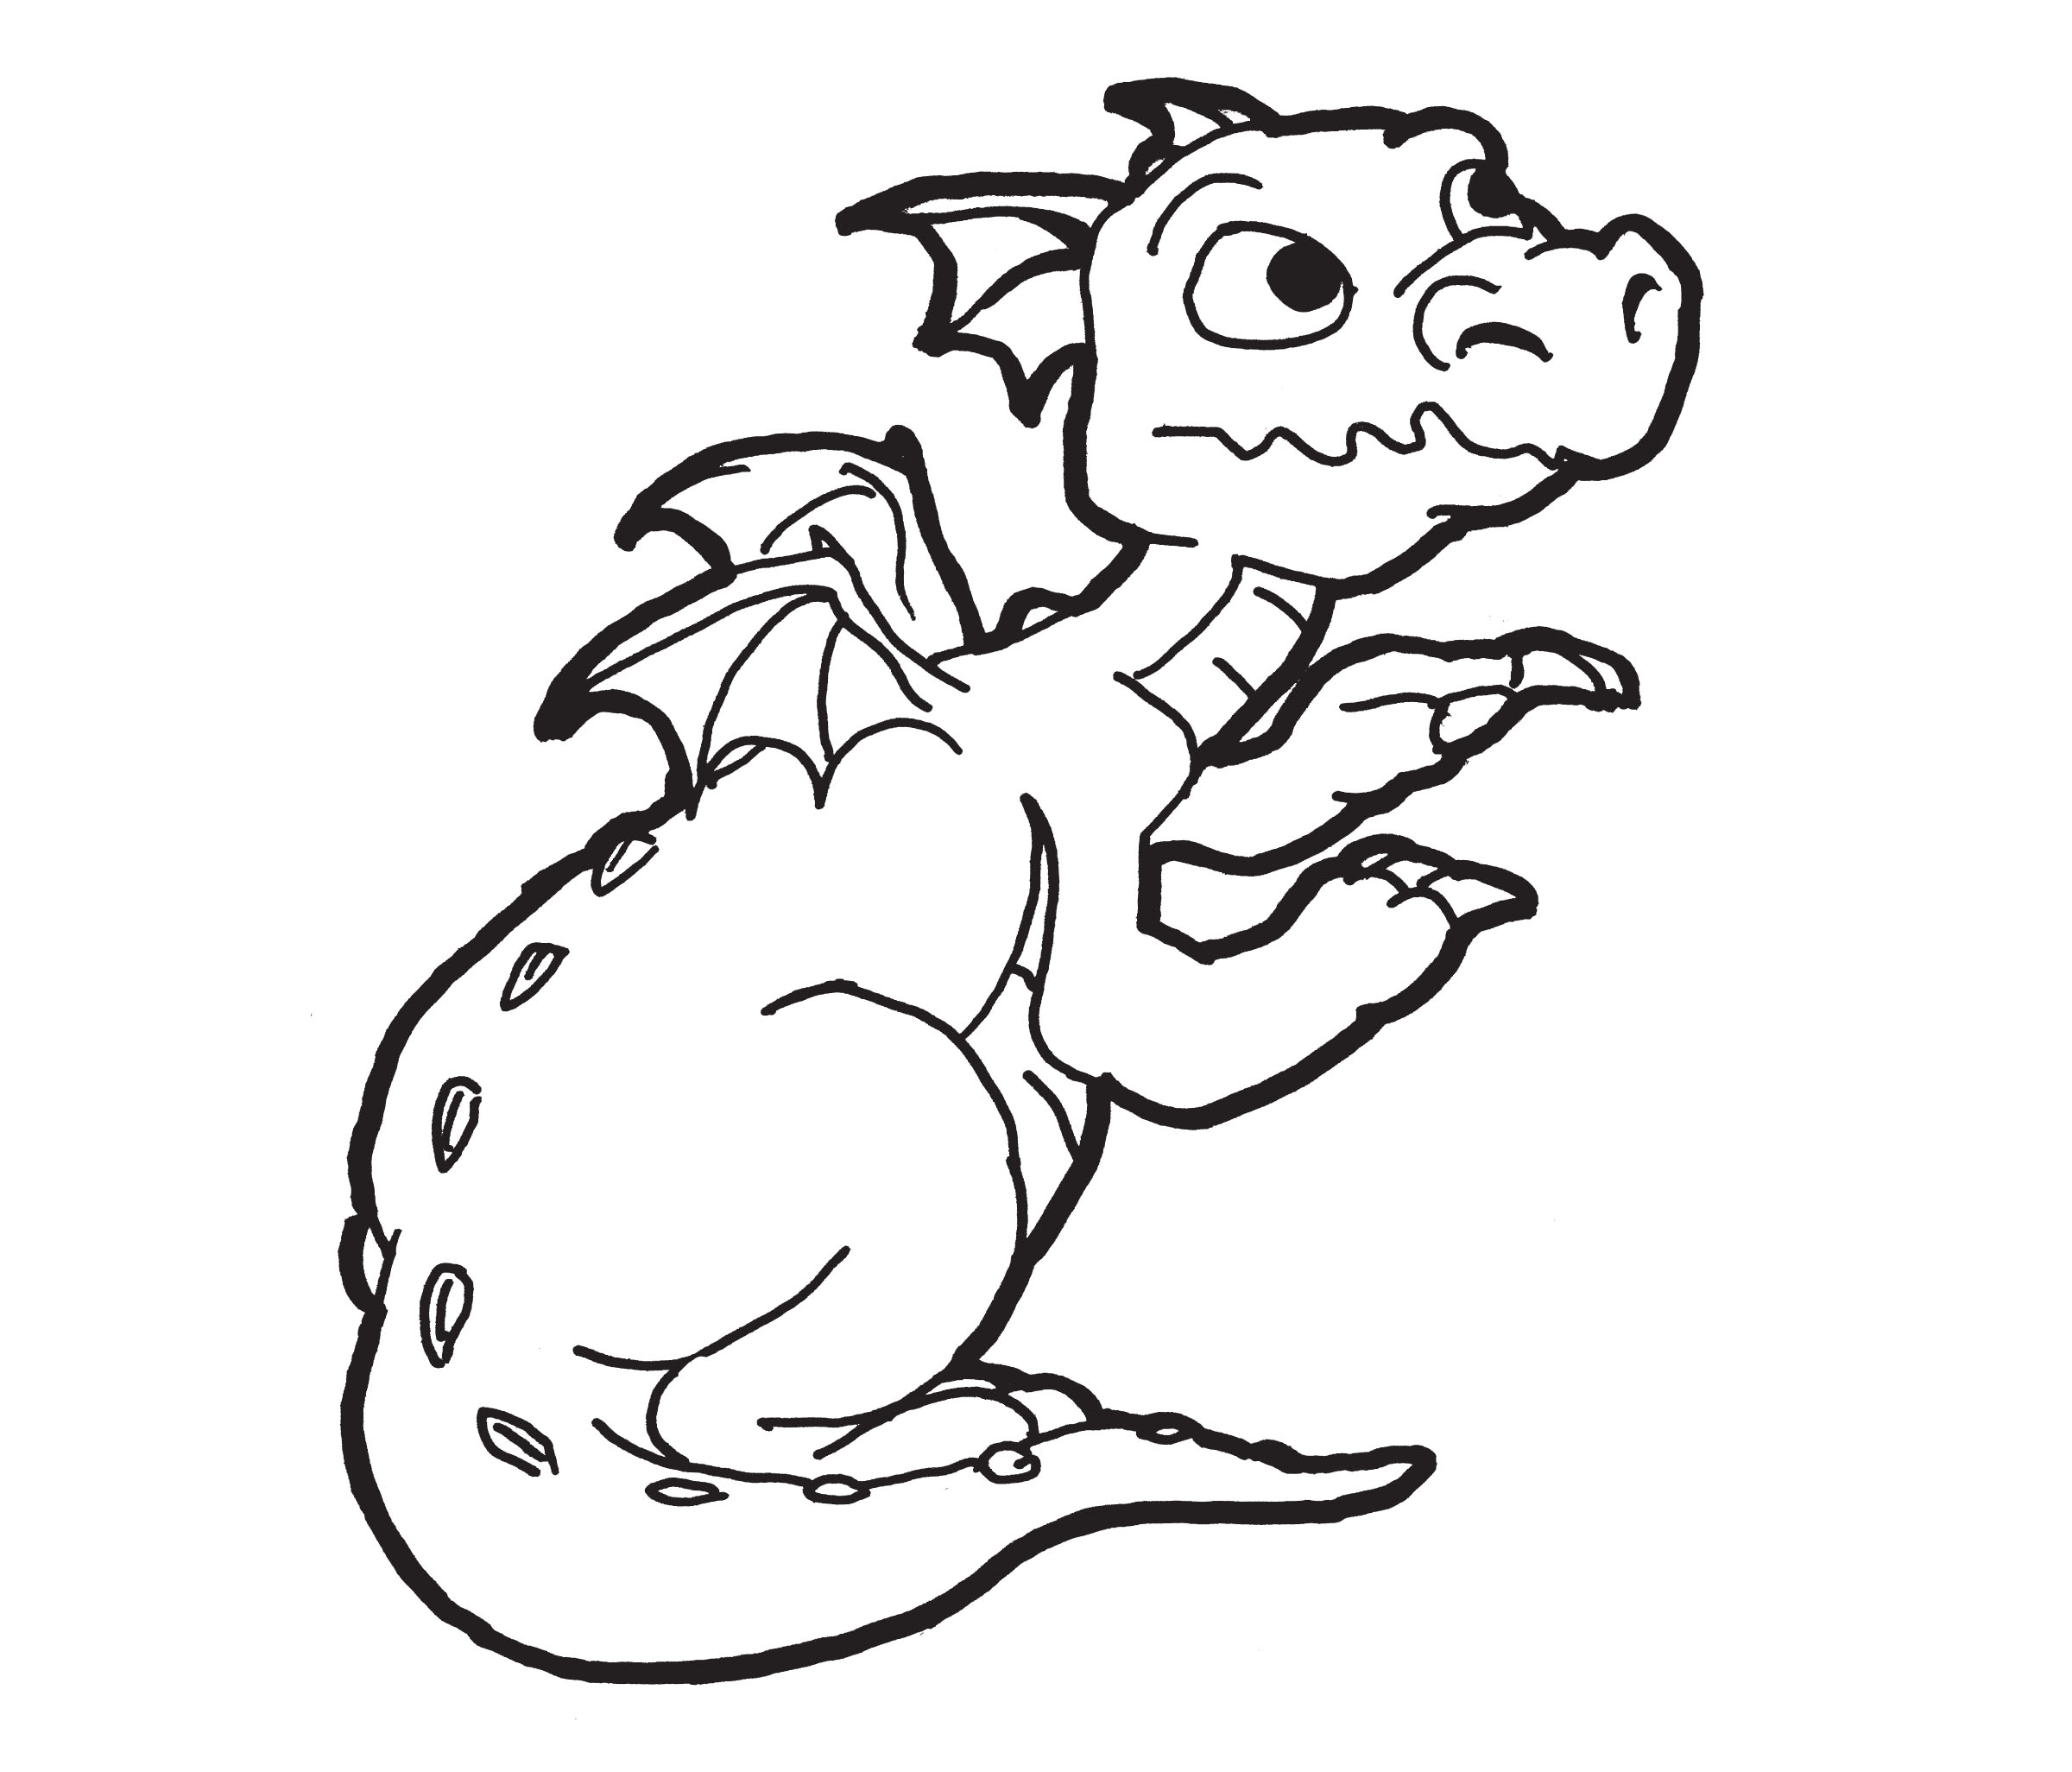 photo regarding Dragon Printable Coloring Pages known as No cost Printable Dragon Coloring Webpages For Young children